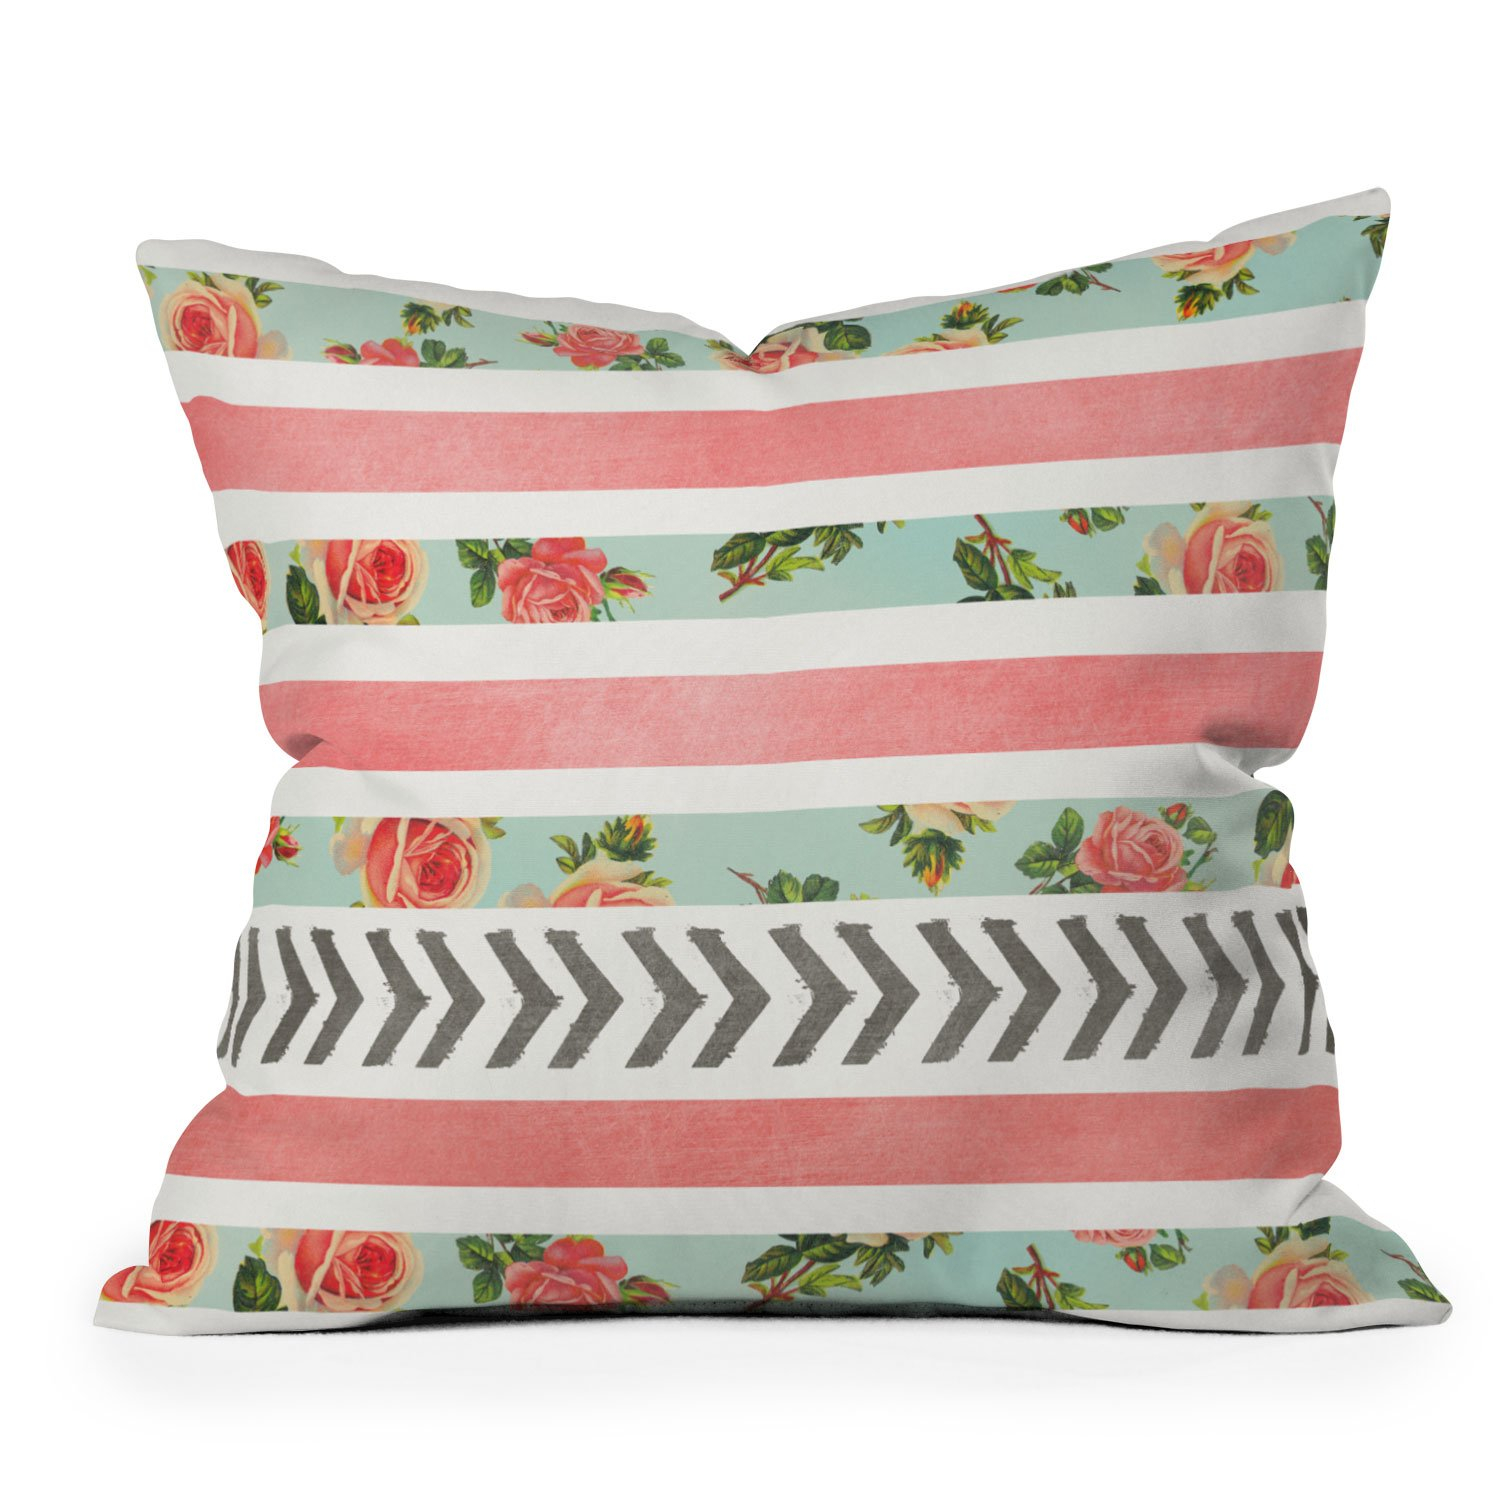 Image of Allyson Johnson Floral Stripes And Arrows Throw Pillow